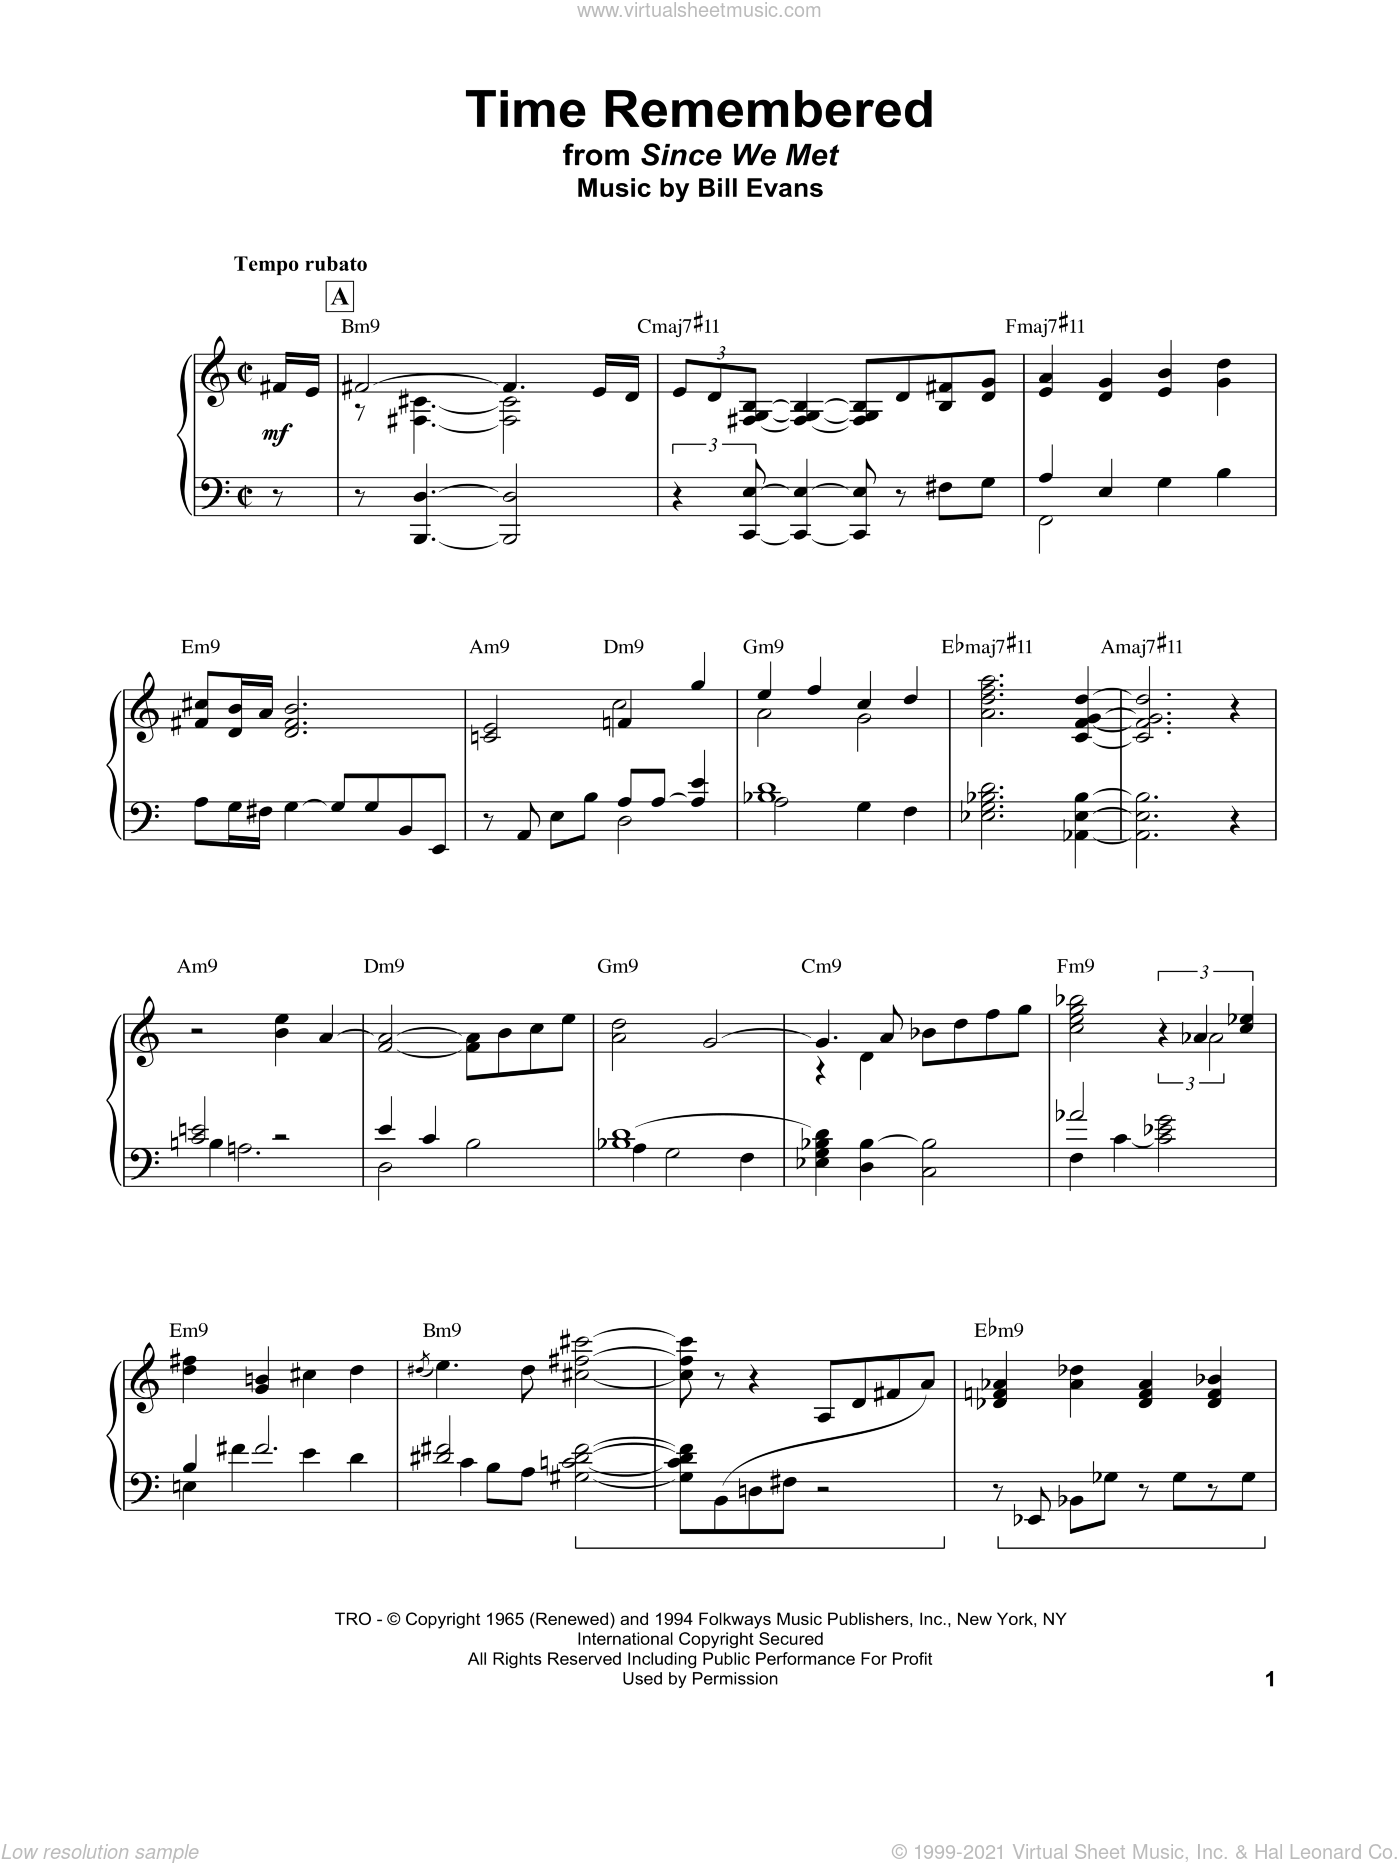 Time Remembered sheet music for piano solo by Bill Evans, intermediate skill level